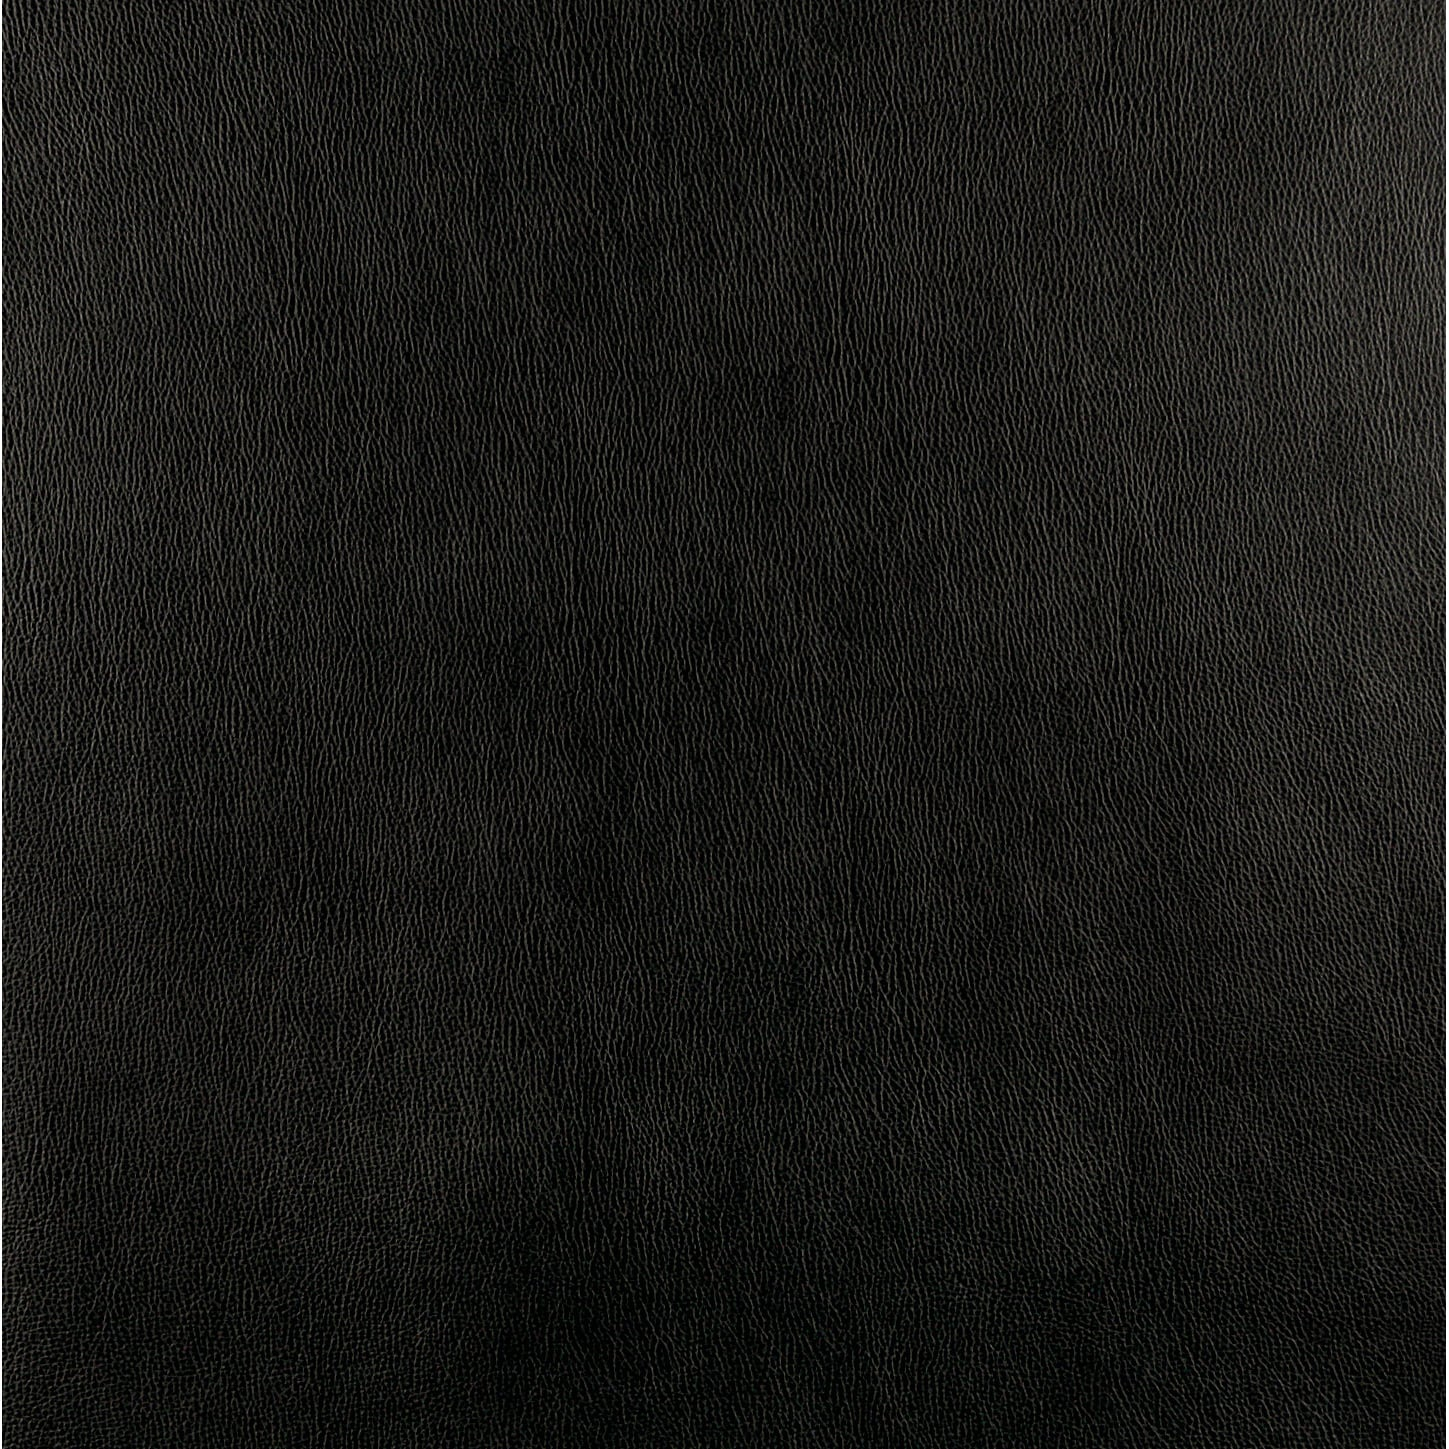 Discounted Designer Fabrics G549 Black Upholstery Grade Recycled